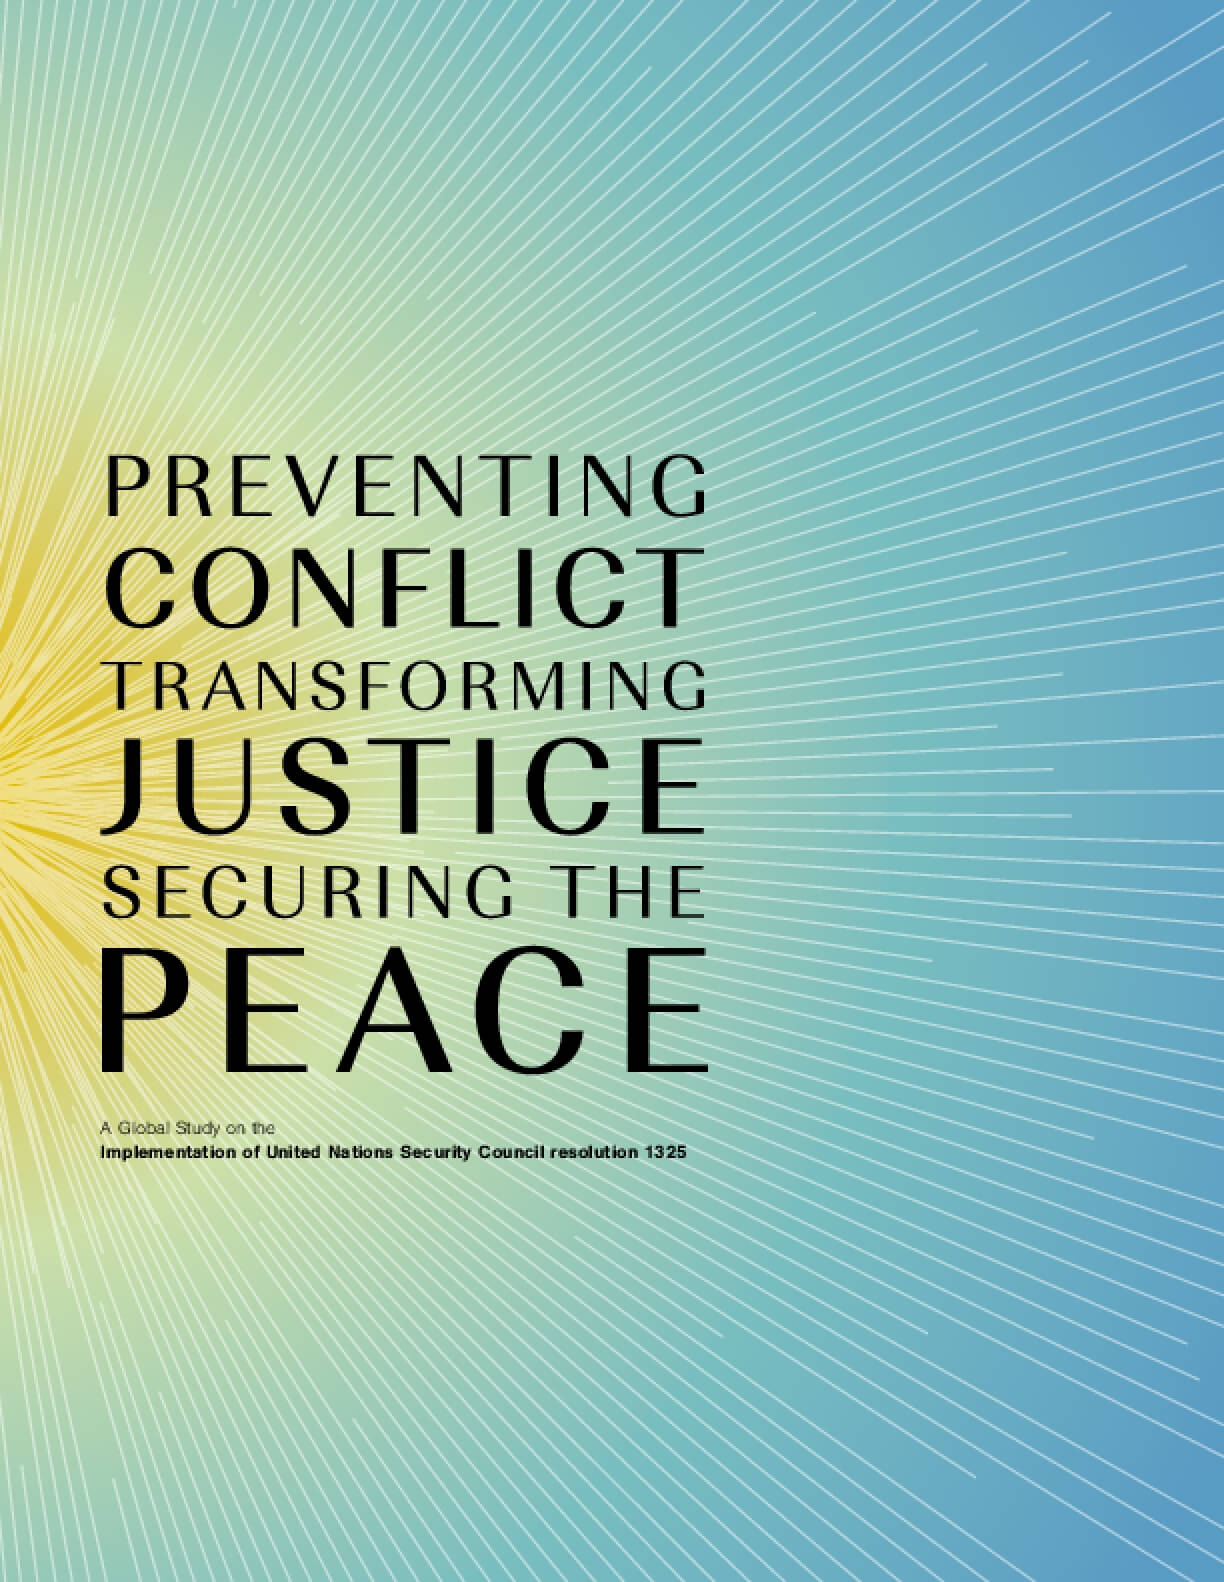 Preventing Conflict, Transforming Justice, Securing the Peace: A Global Study on the Implementation of United Nations Security Council resolution 1325